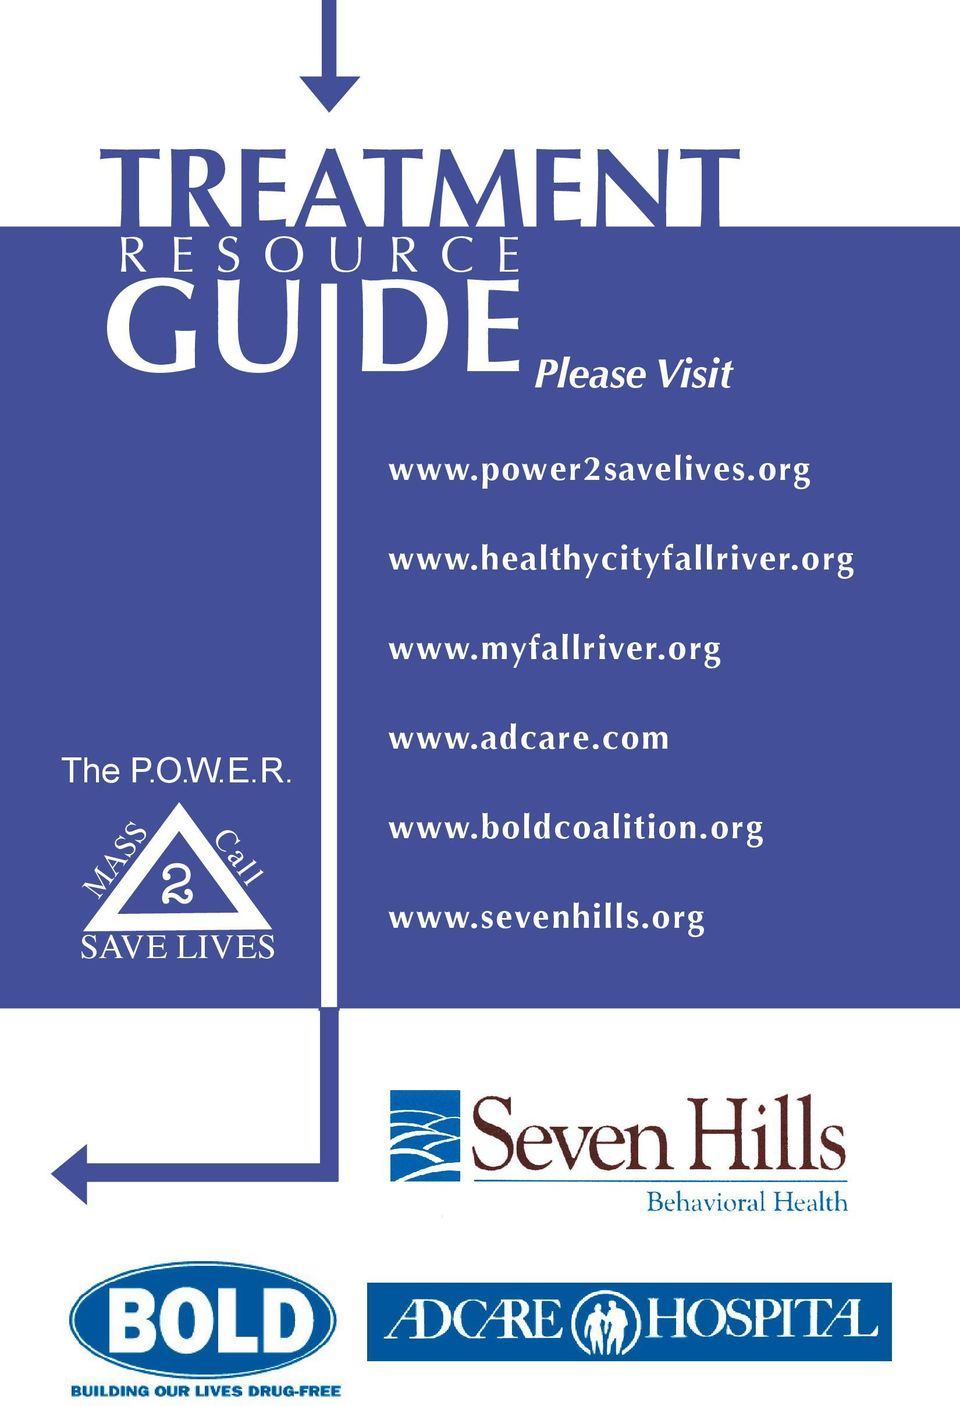 org The P.O.W.E.R. MASS Call SAVE LIVES www.adcare.